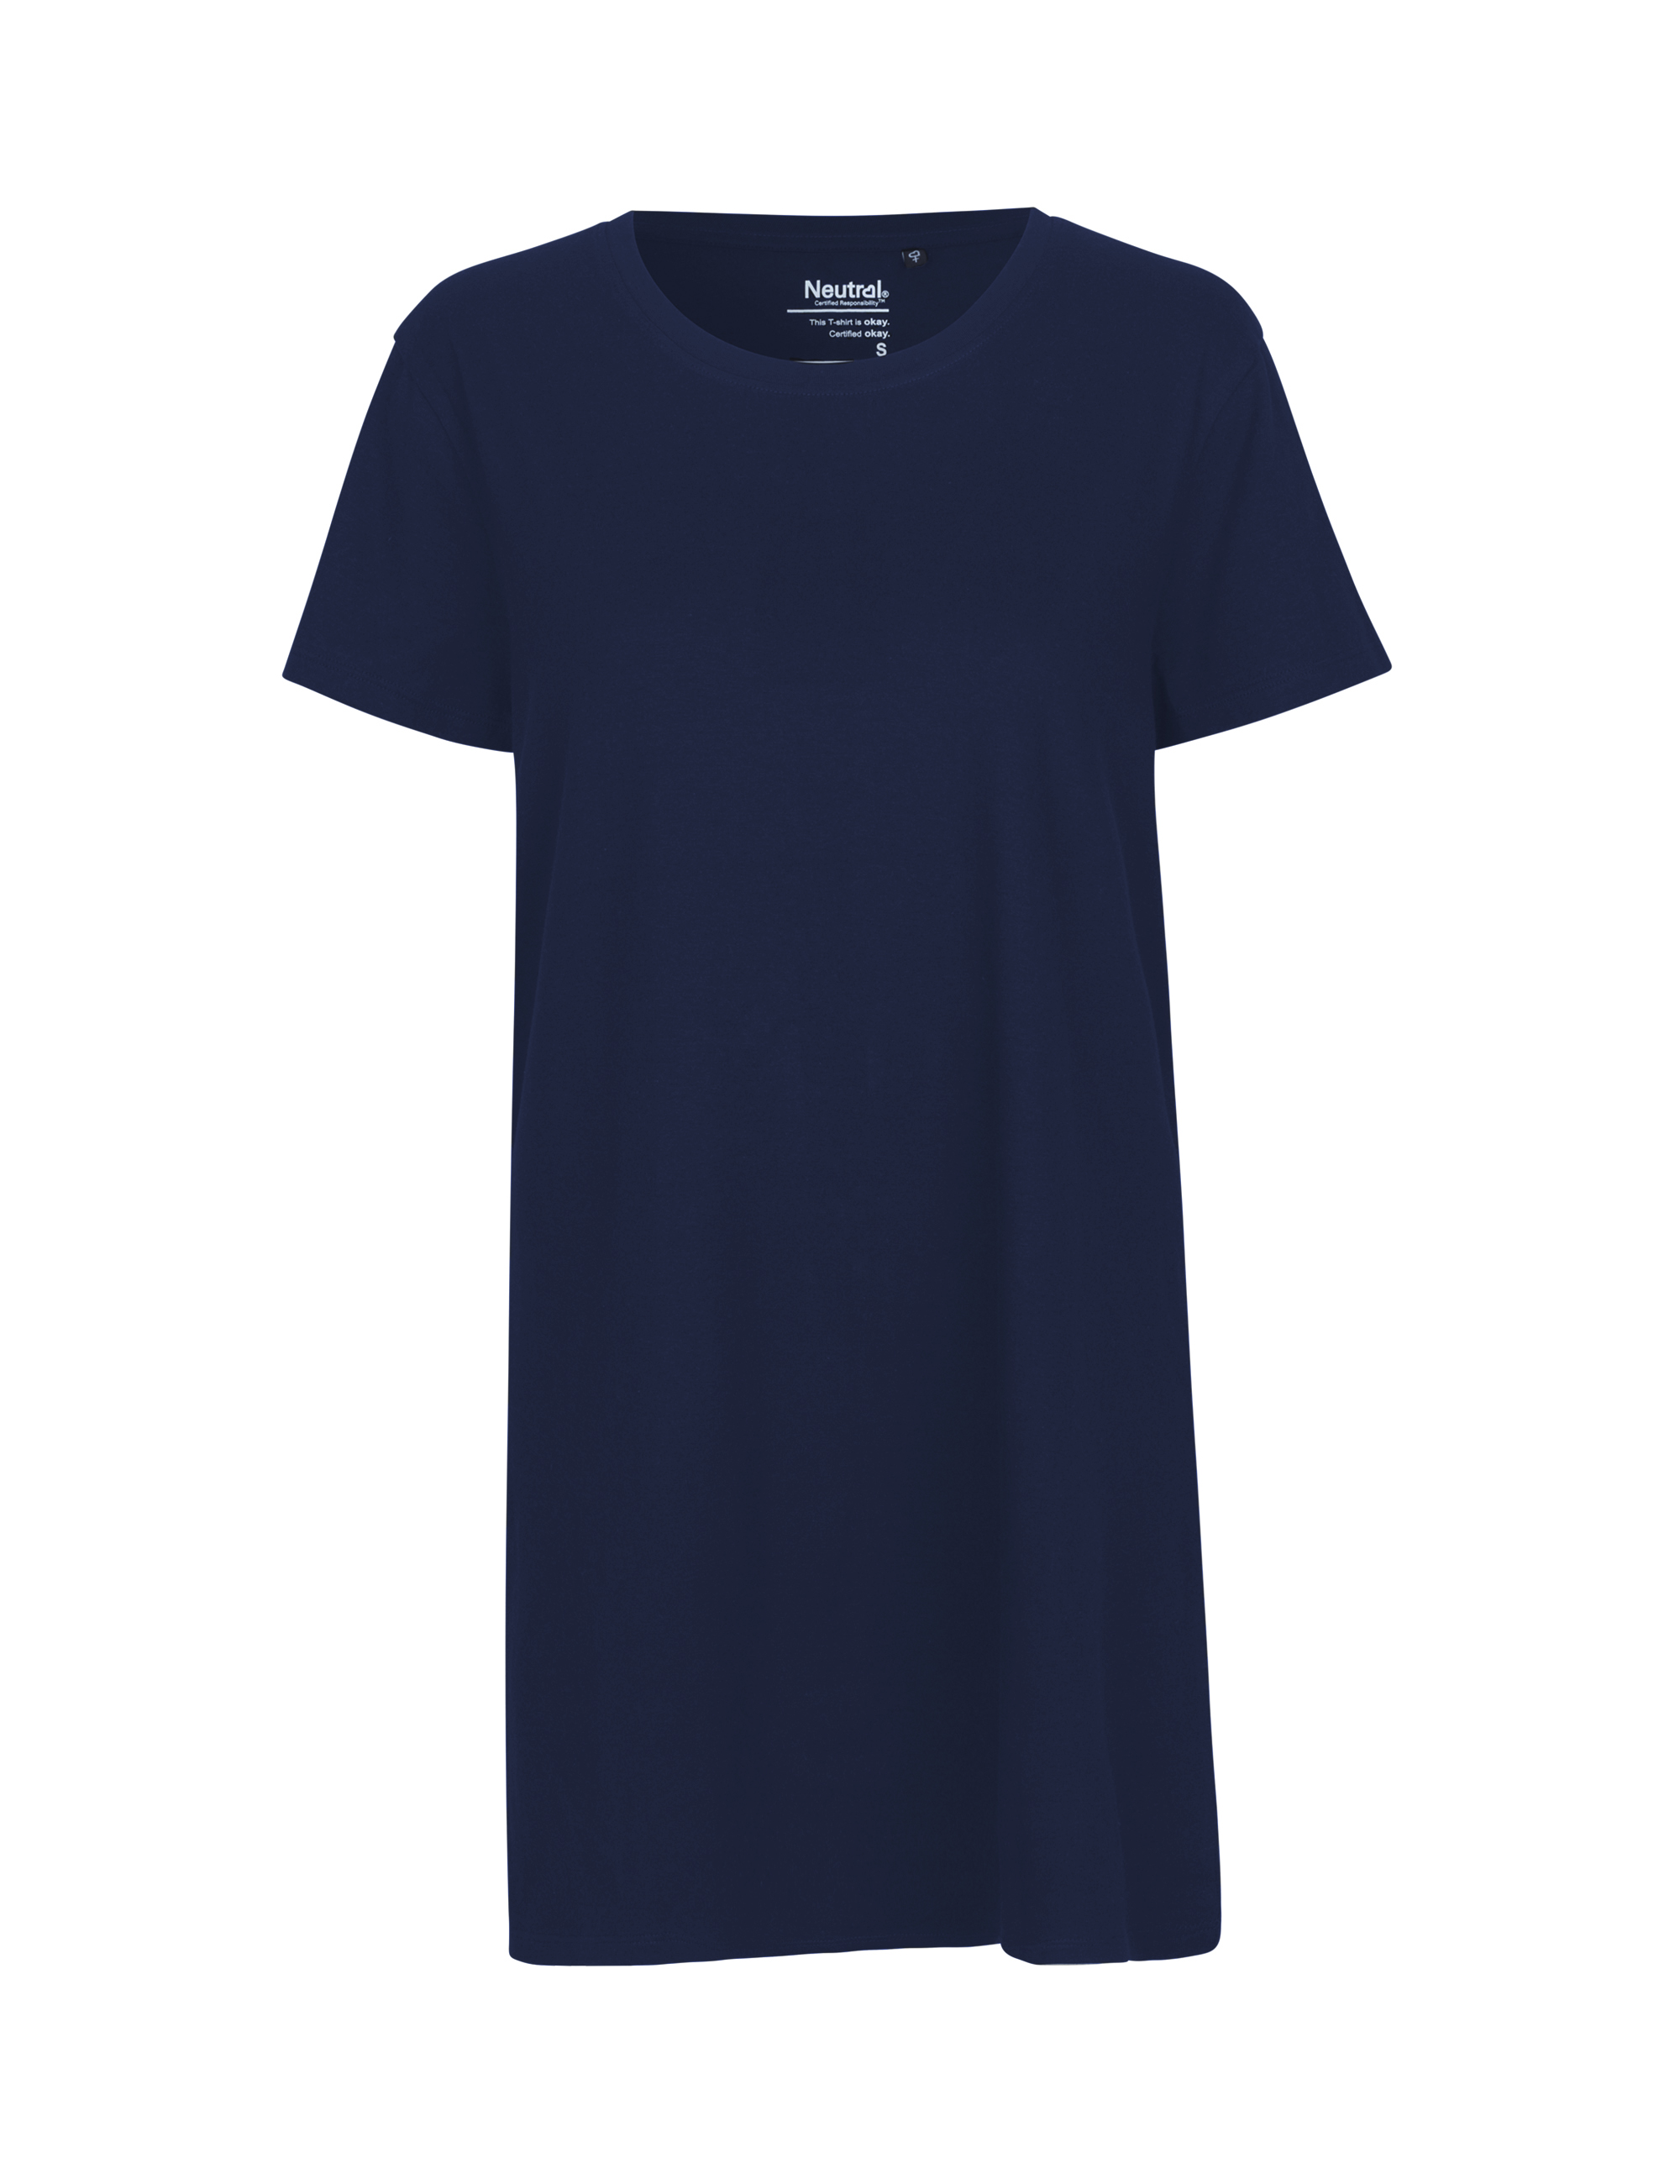 O81020 Ladies Long Length T-shirt i Navy